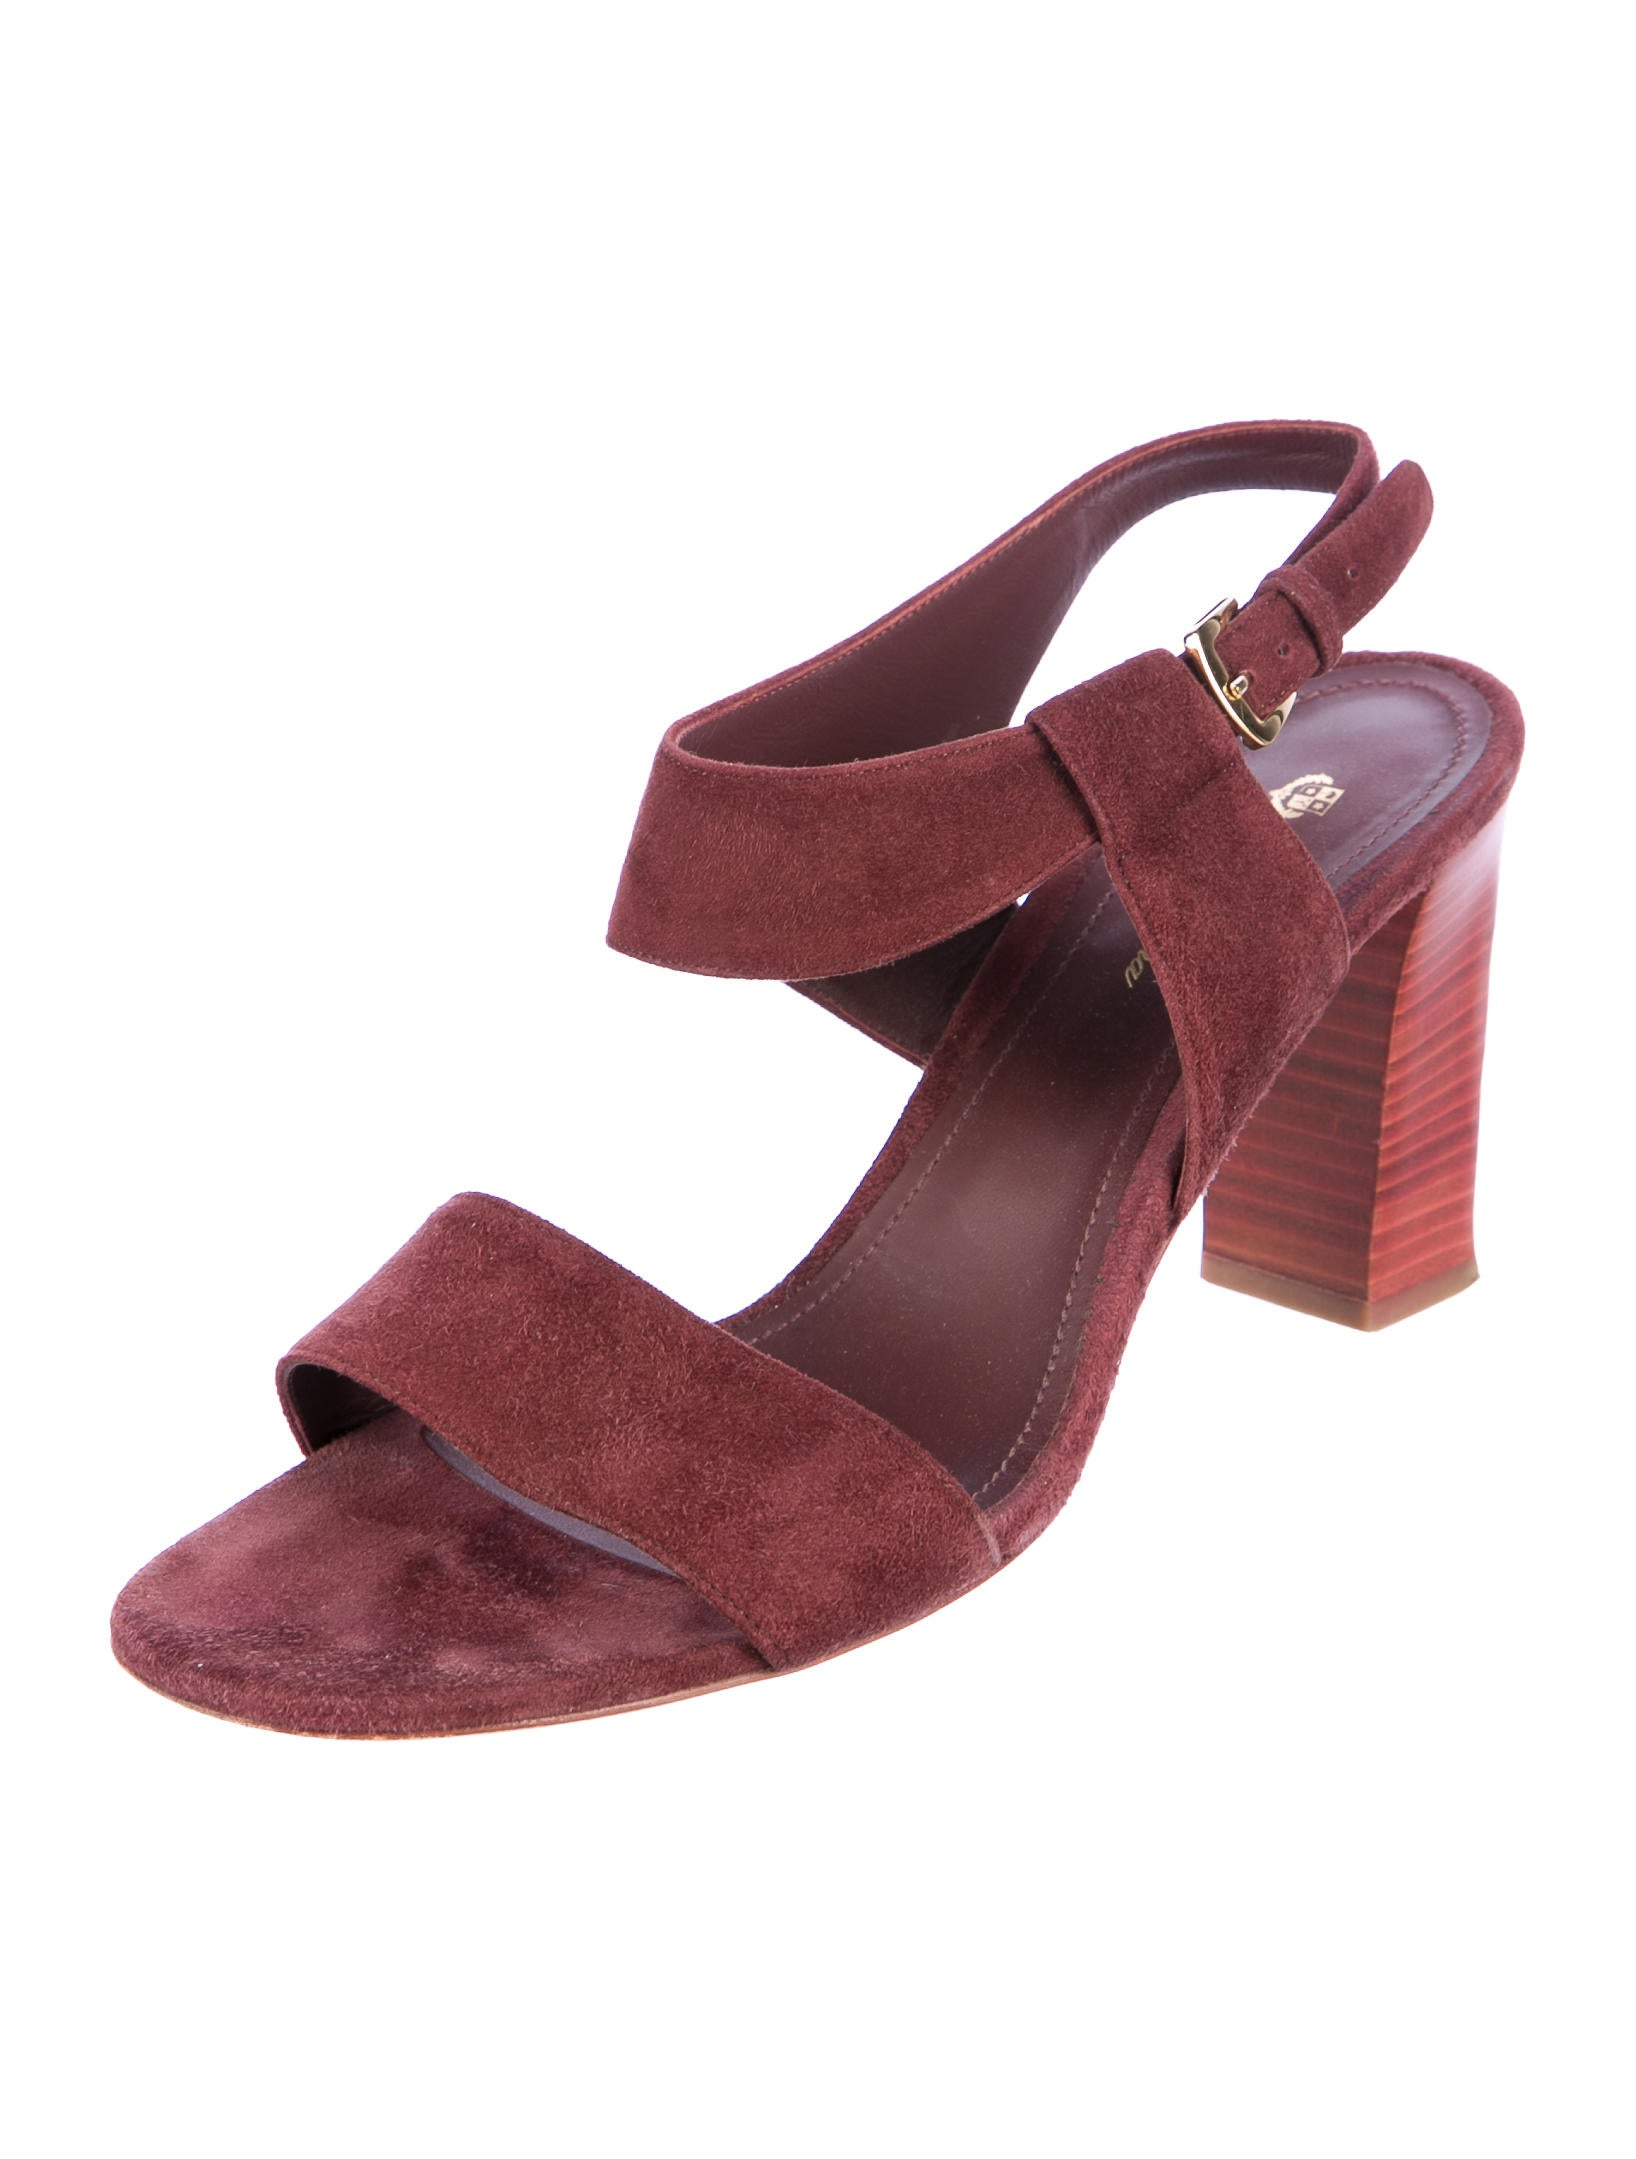 2014 new sale online Loro Piana Suede Ankle Strap Sandals sale hot sale visa payment cheap price FyqiVUIZA3